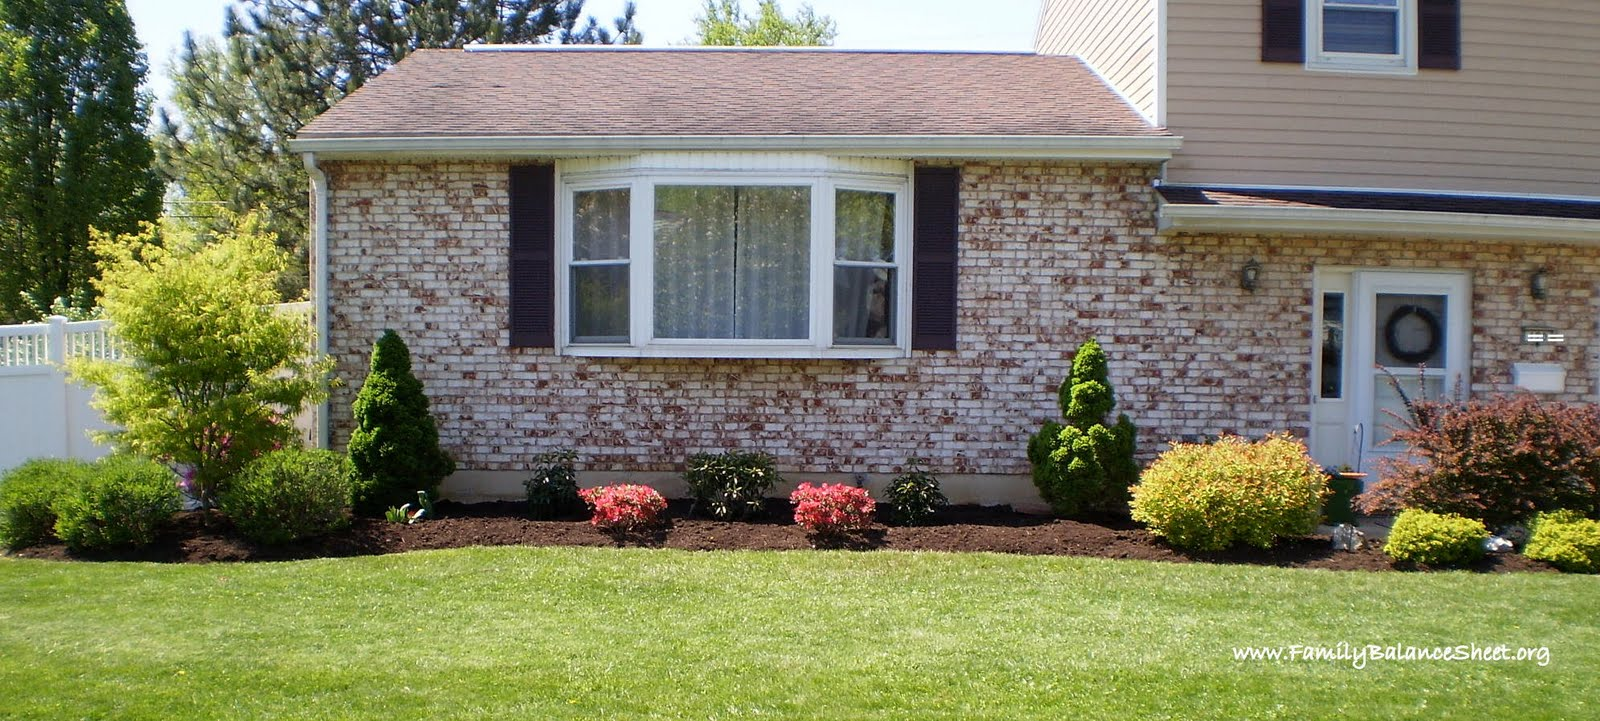 15 tips to help you design your front yard save money too for Simple landscape ideas for front of house